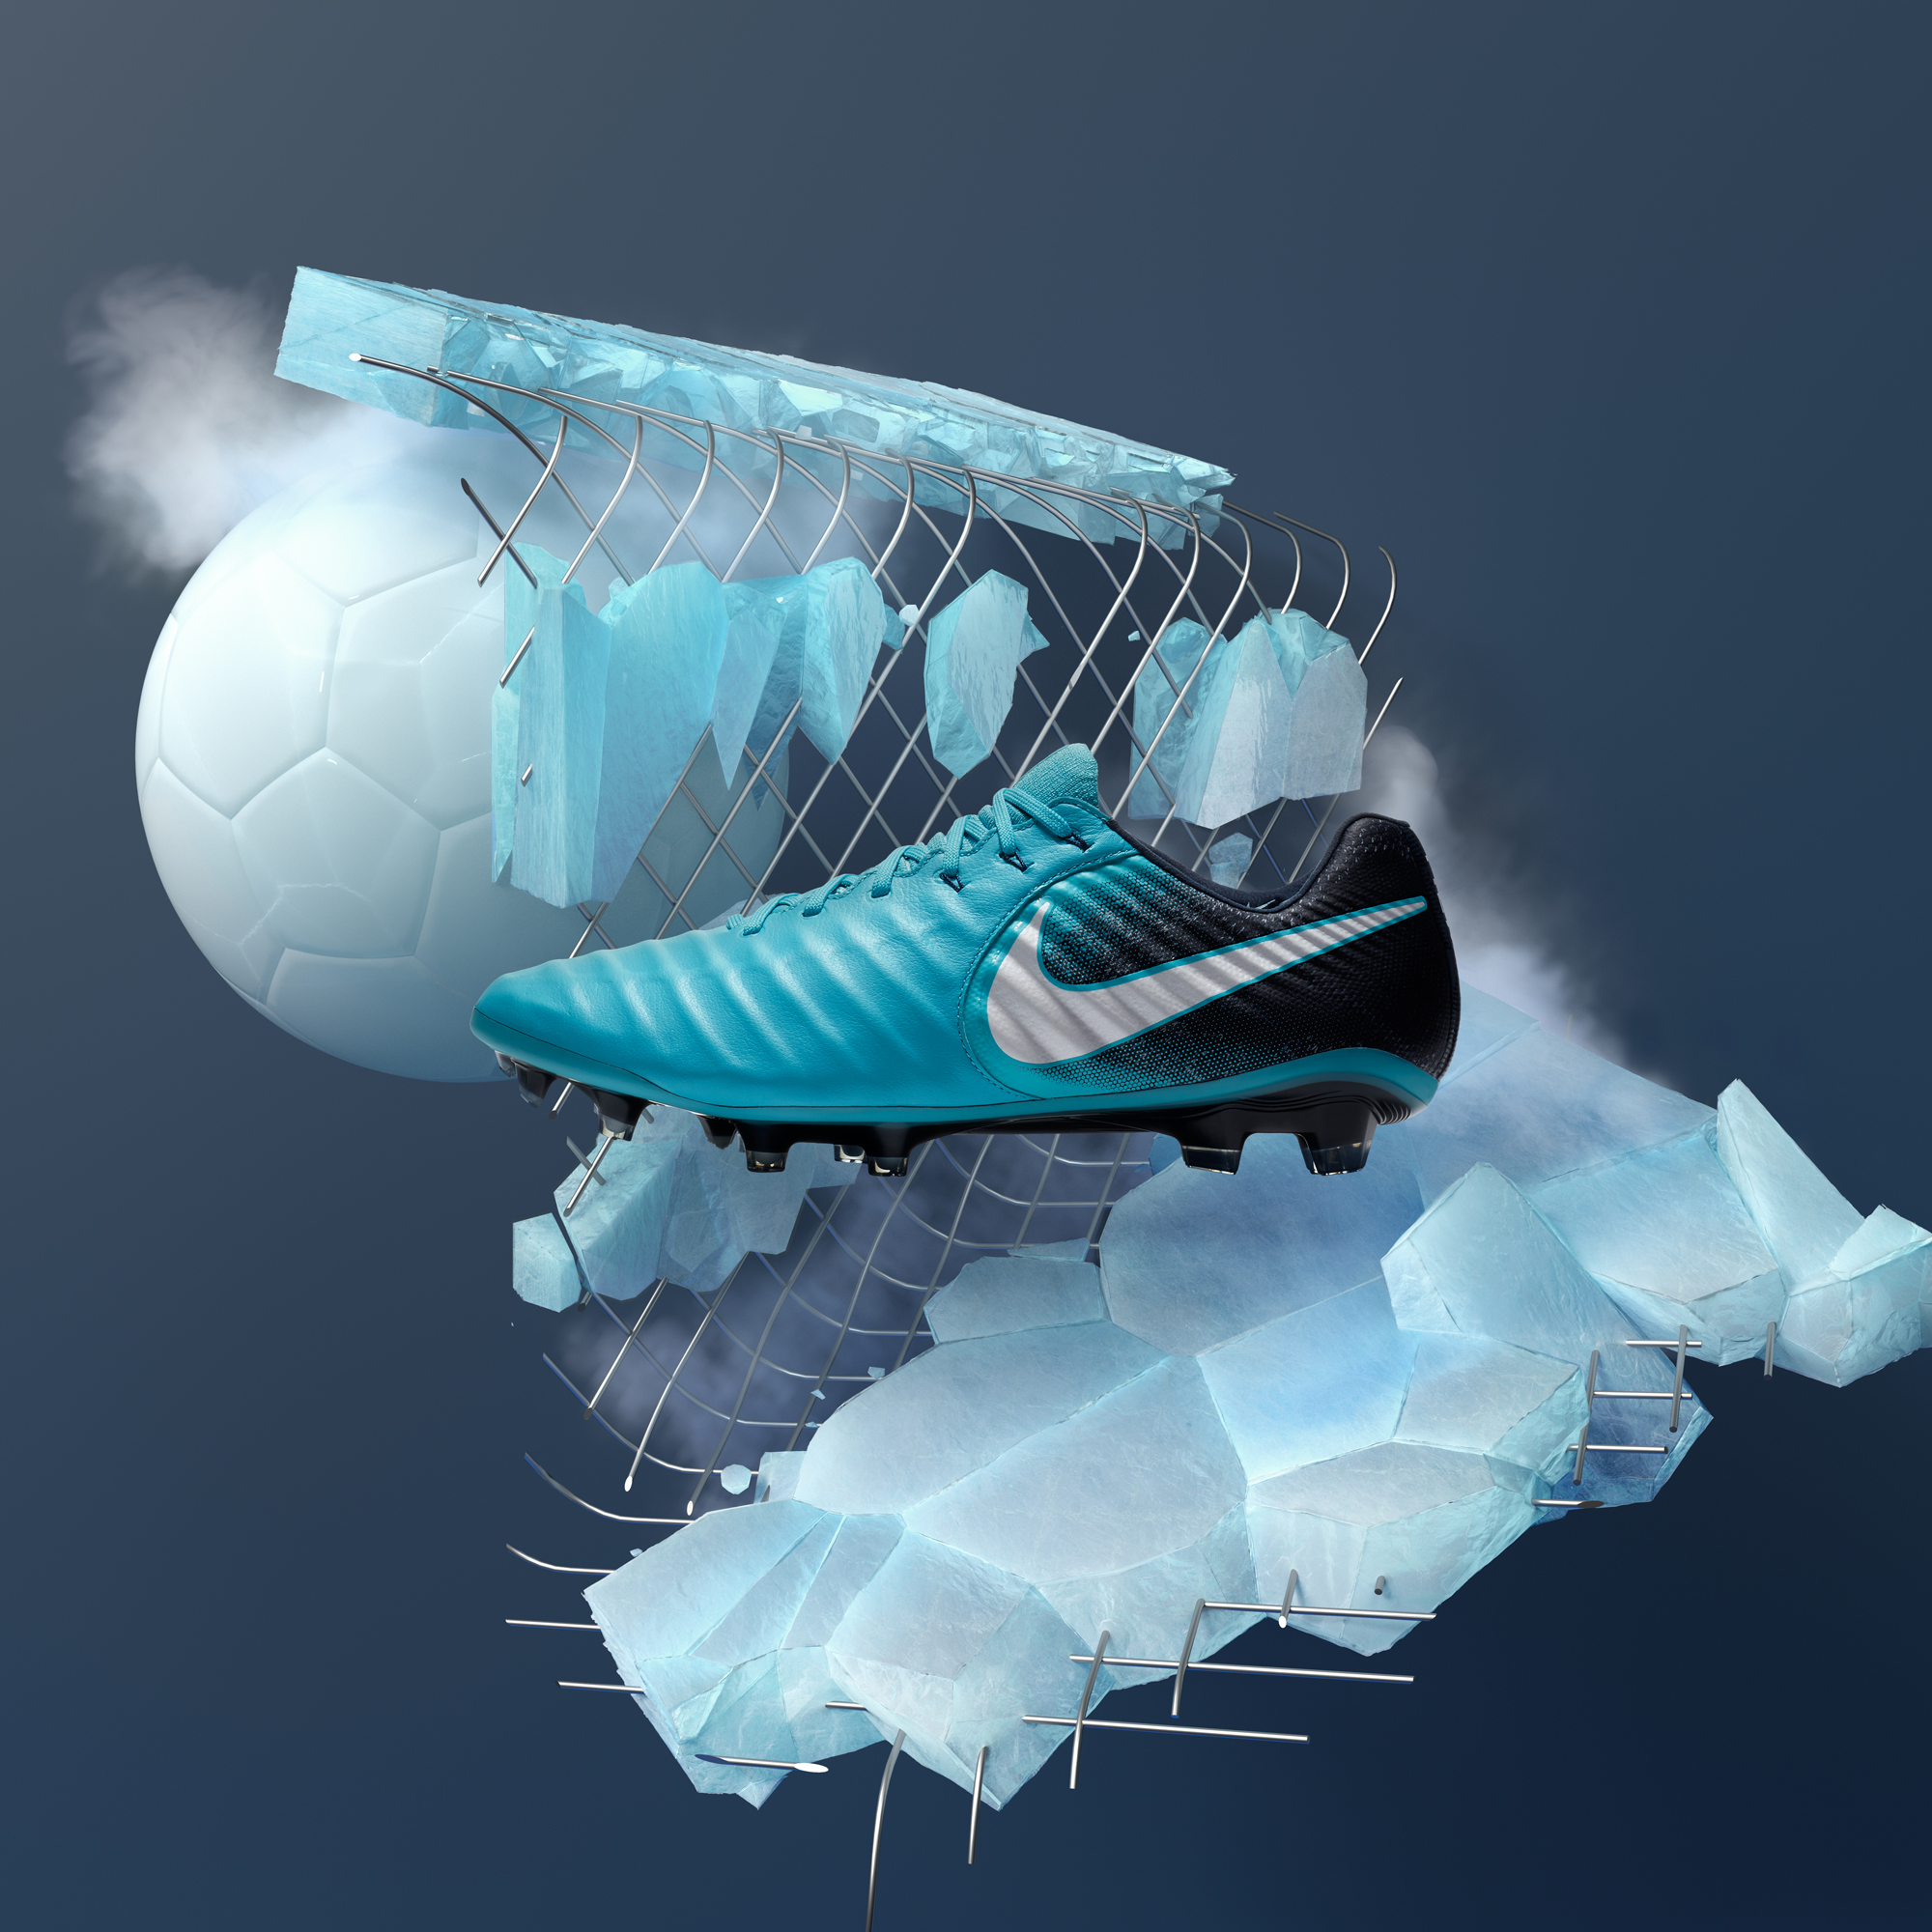 TIEMPO-ICE_PRODUCT_CROPPING-GUIDE_behance